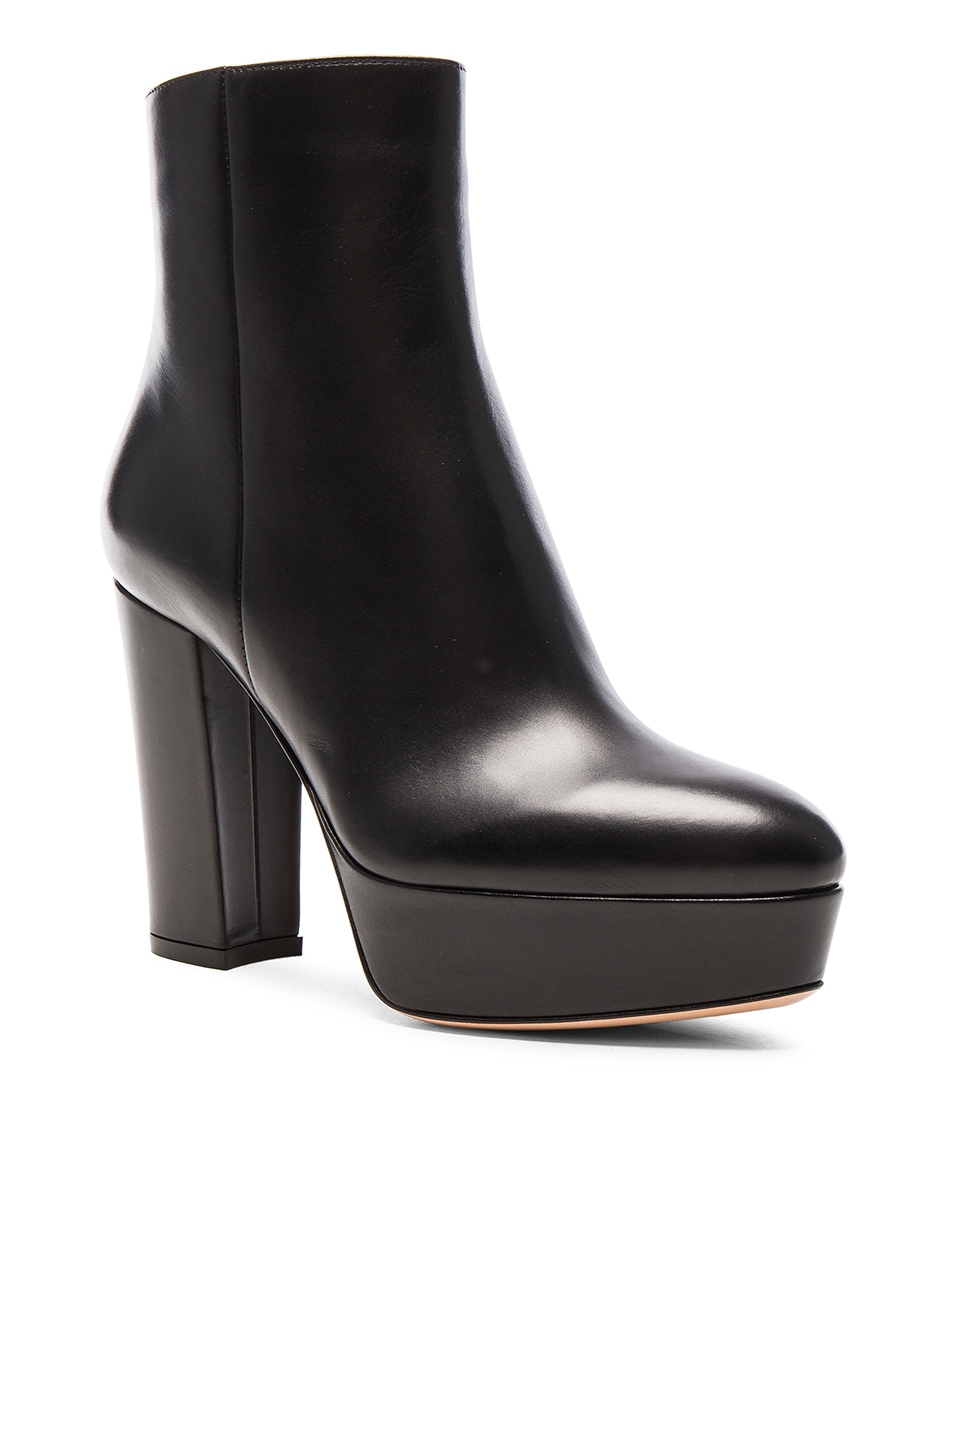 Image 2 of Gianvito Rossi Platform Leather Boots in Black